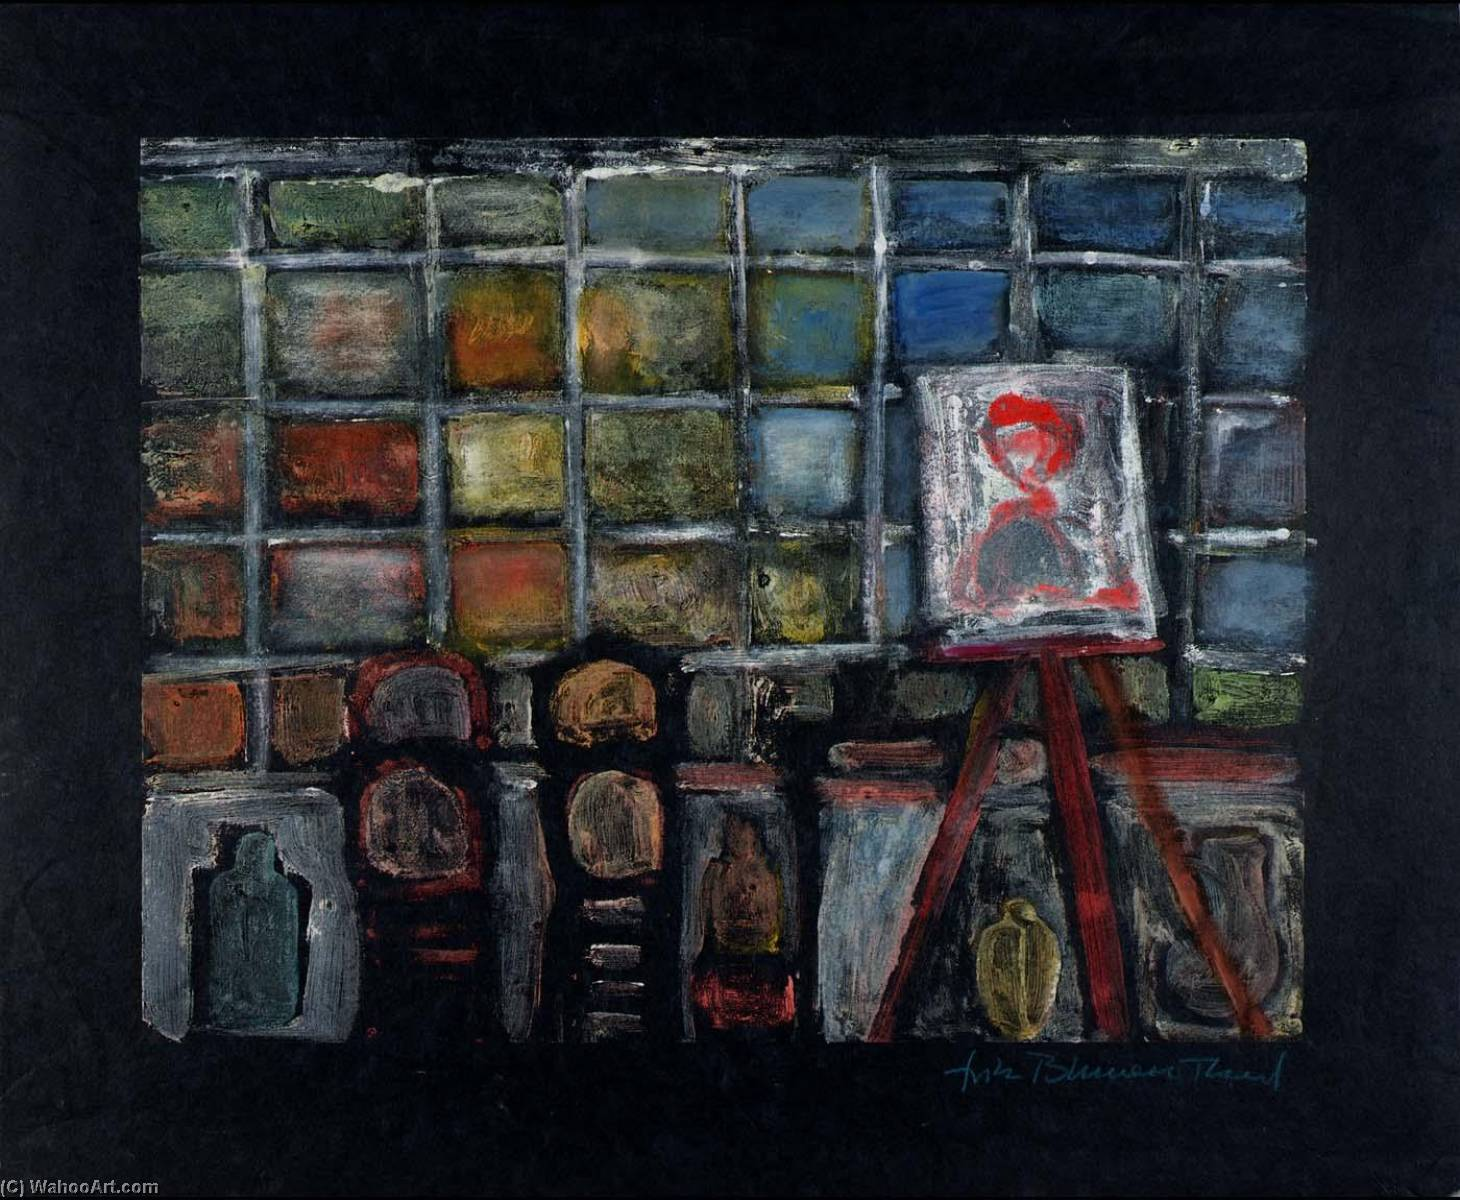 Studio No. 2, 1969 by Fritz Blumenthal | Oil Painting | WahooArt.com